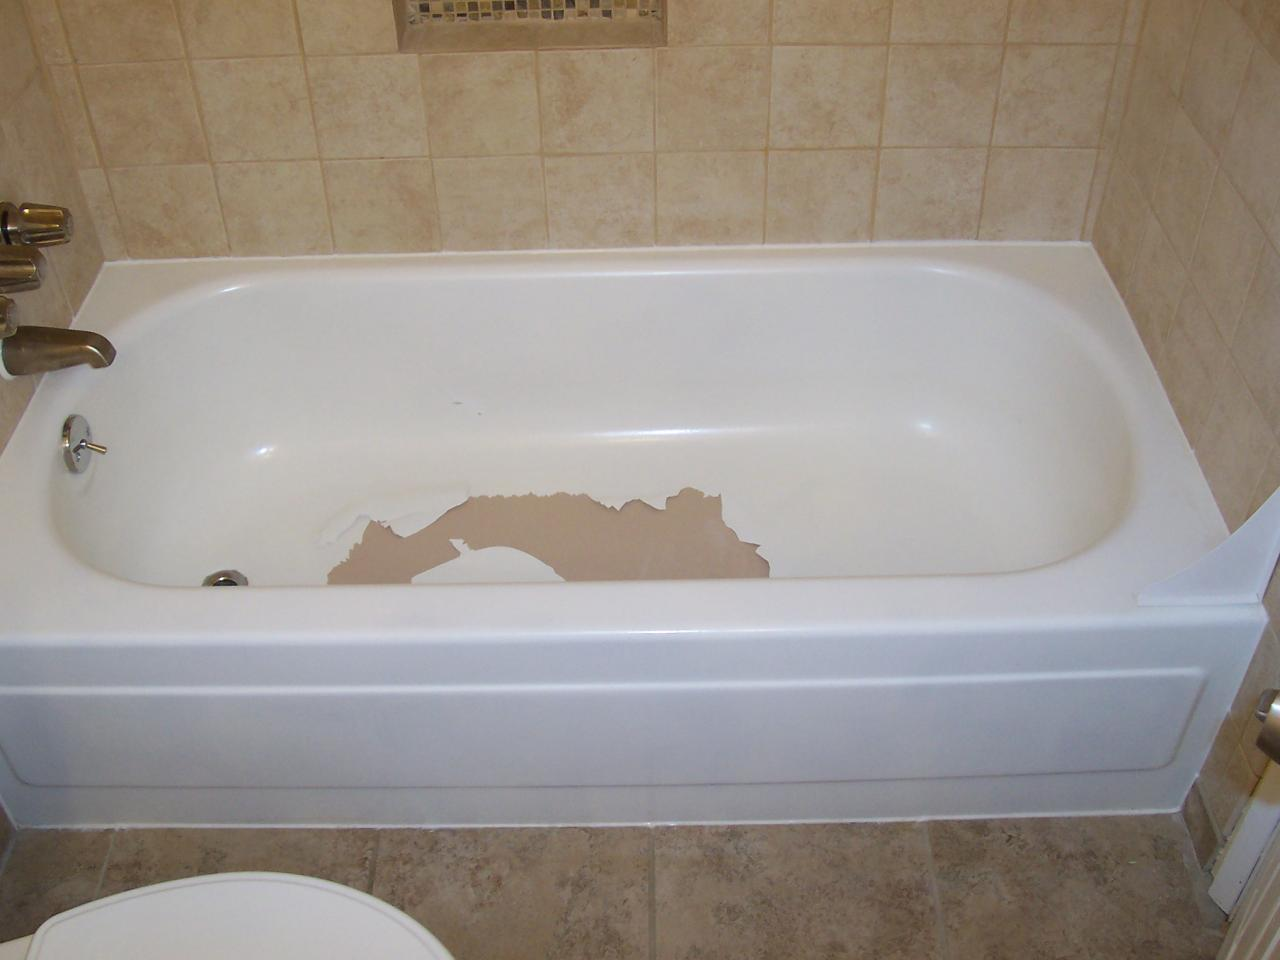 Paint In Bathroom Peeling How Fix. best of how to fix peeling paint ...